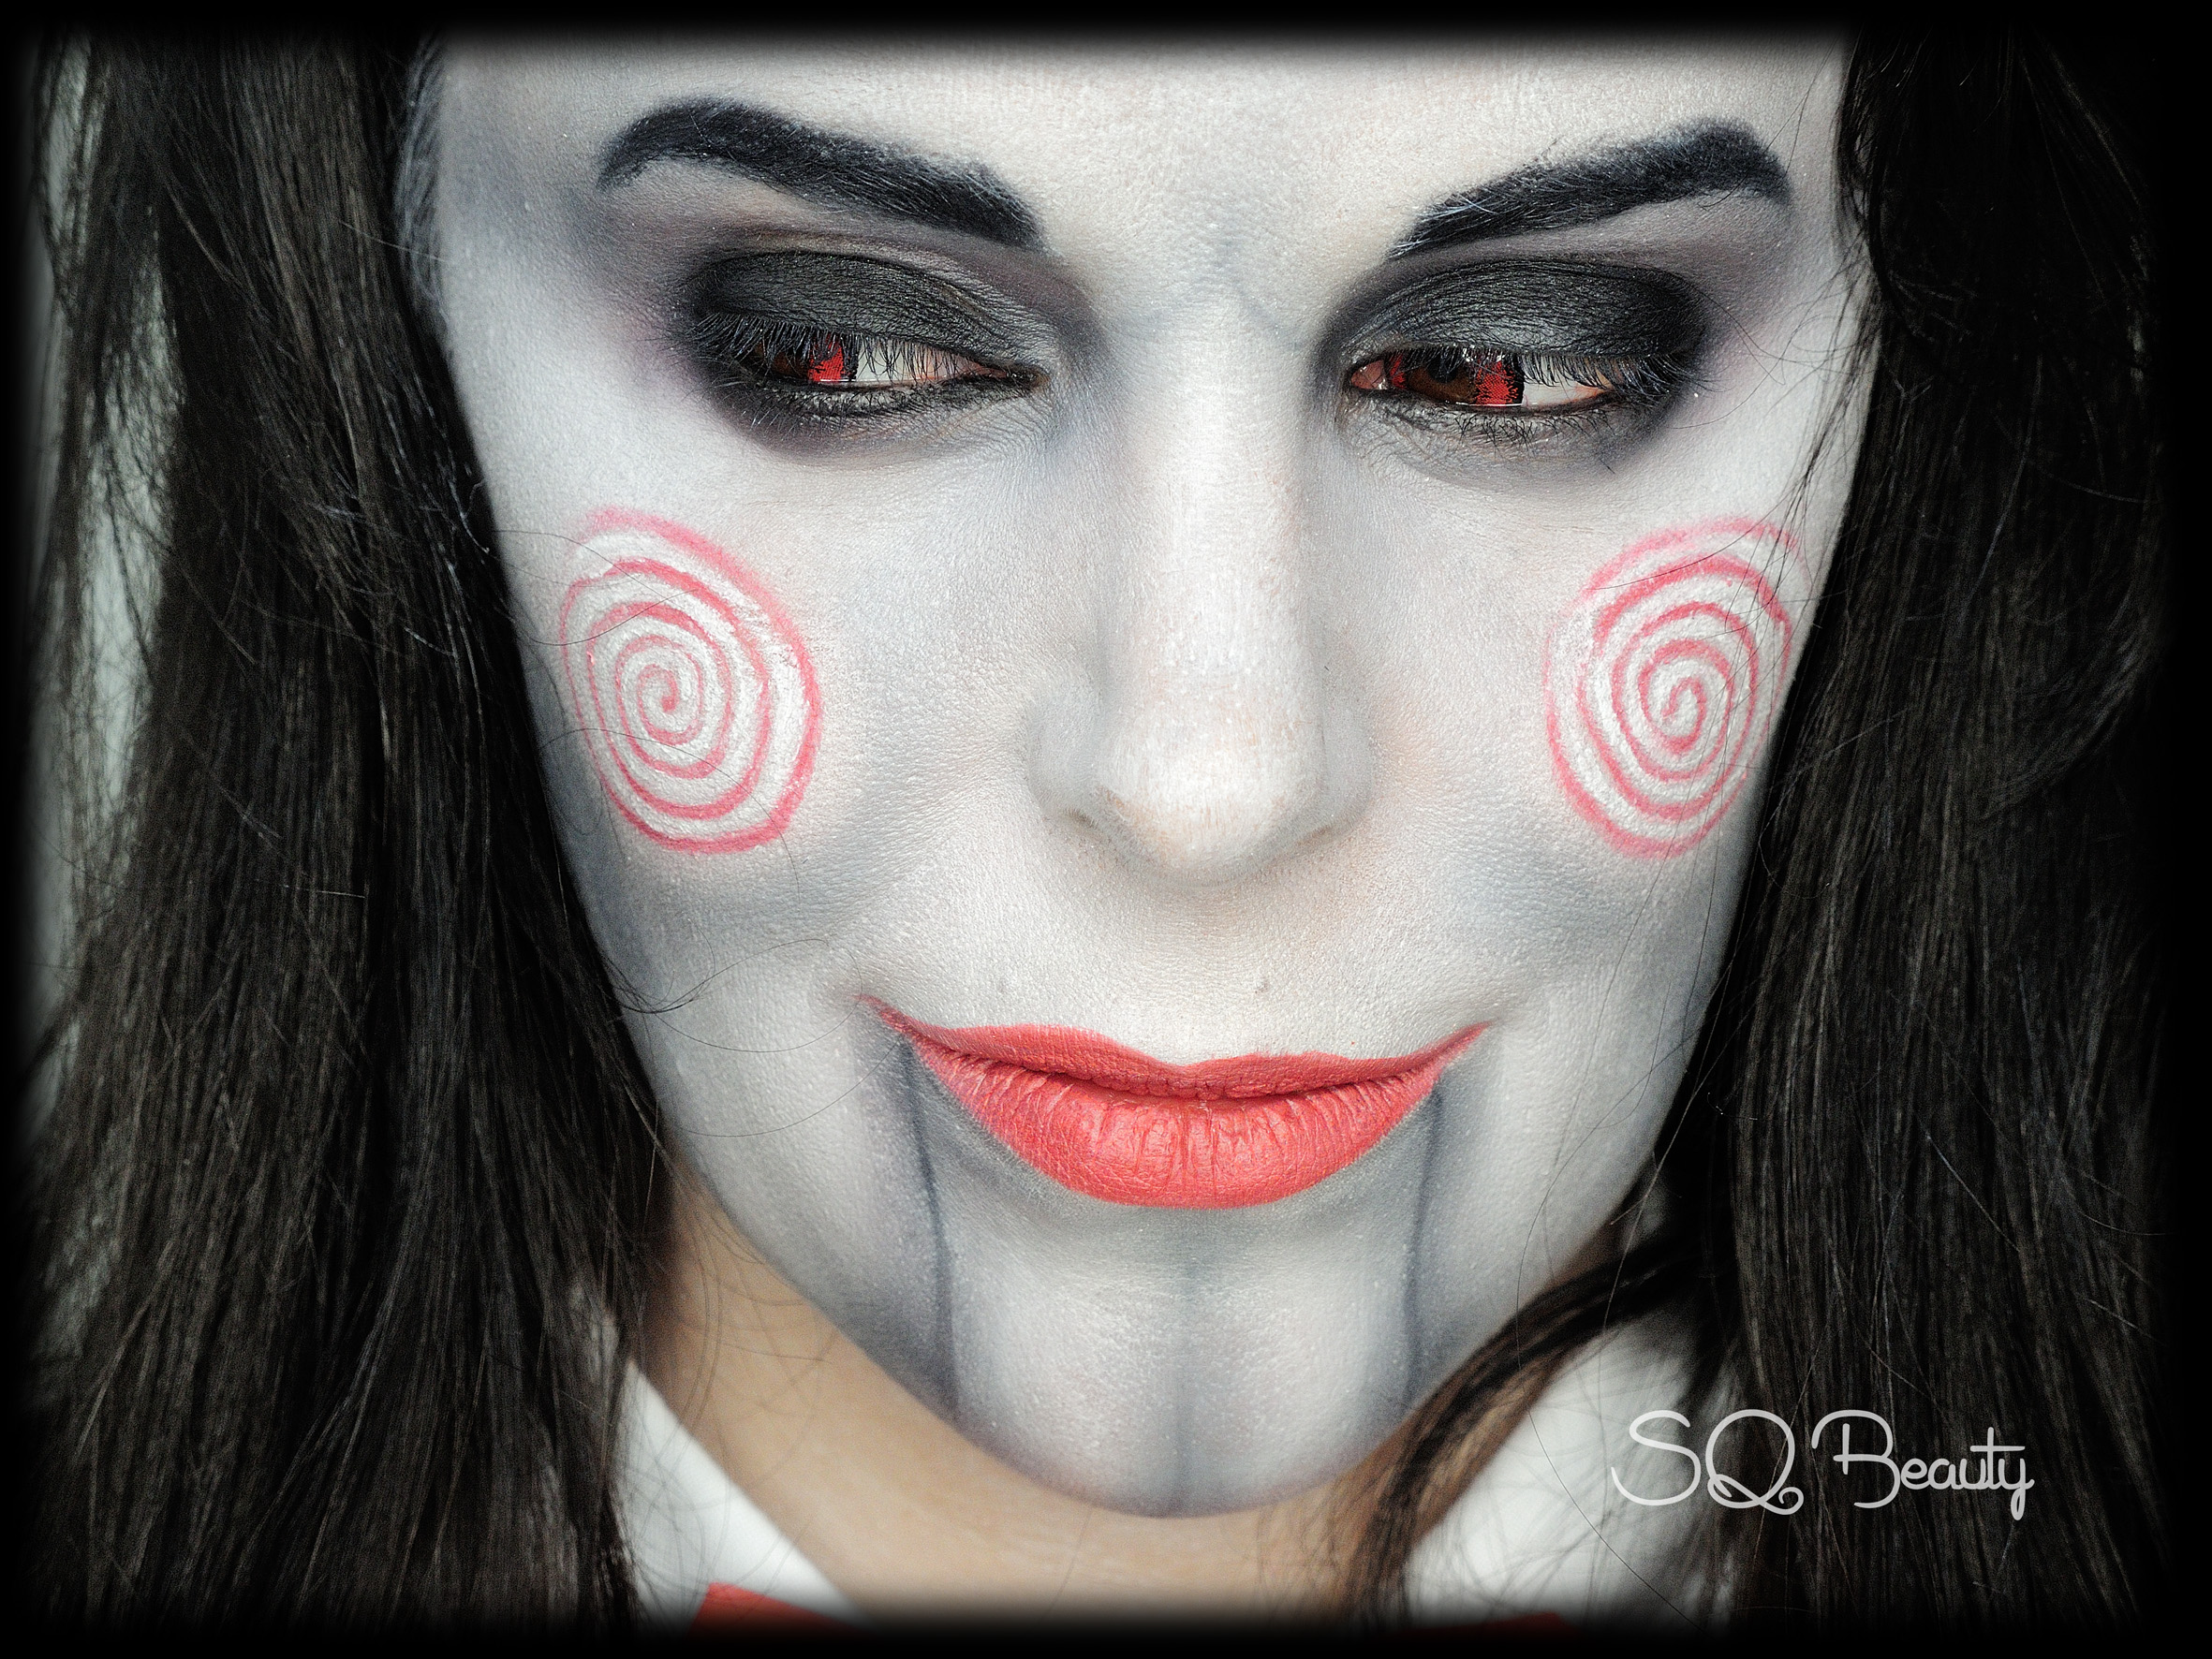 Jigsaw Makeup Jigsaw de saw makeup